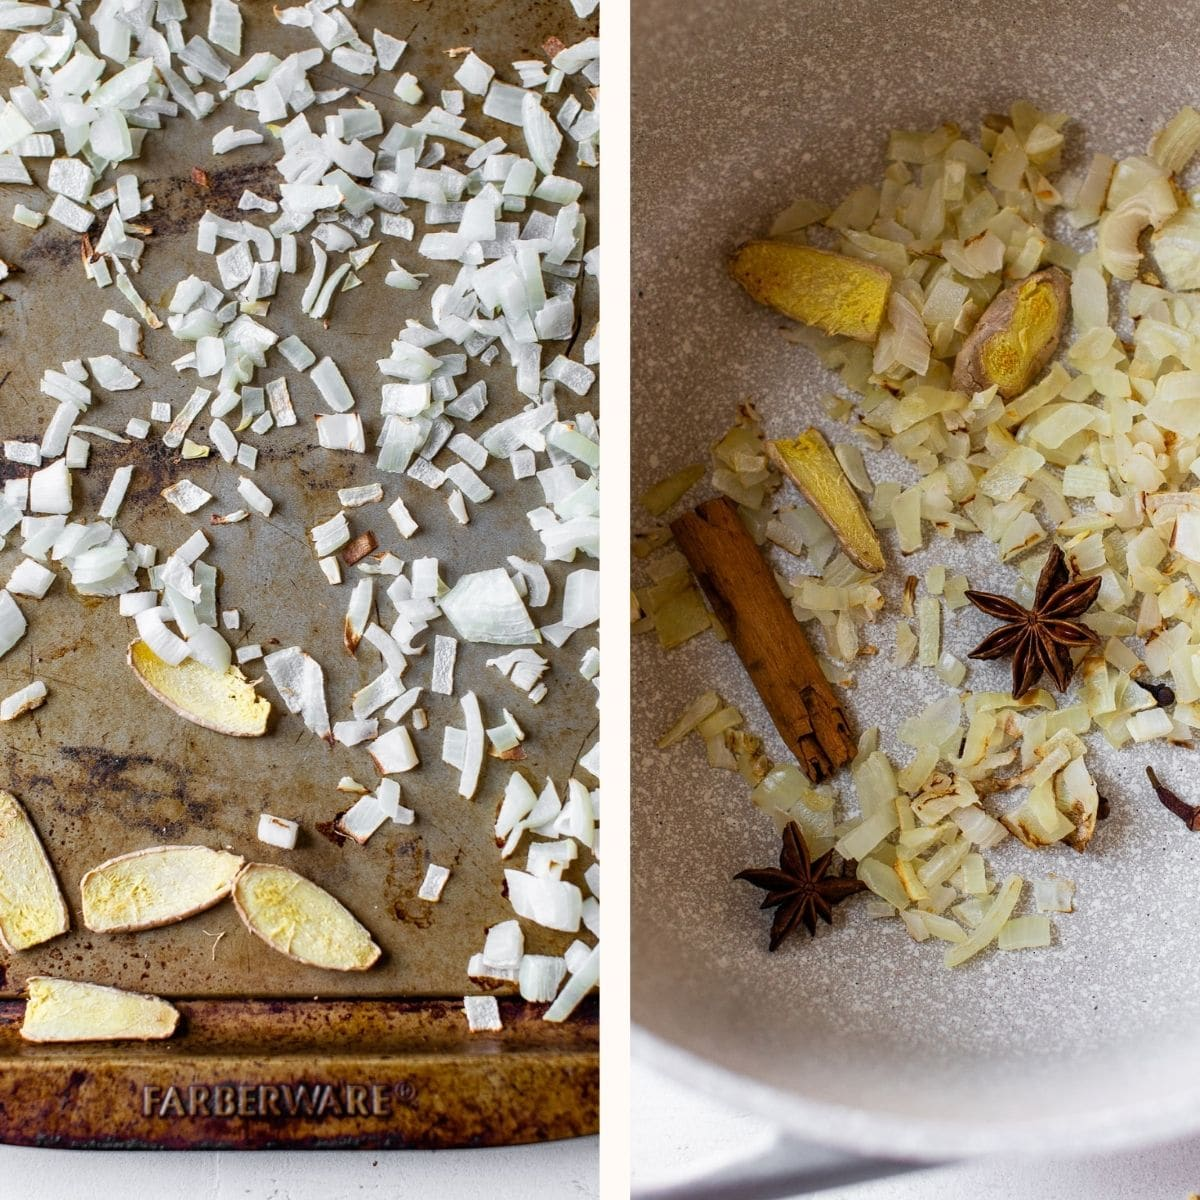 whole spices in a saucepan